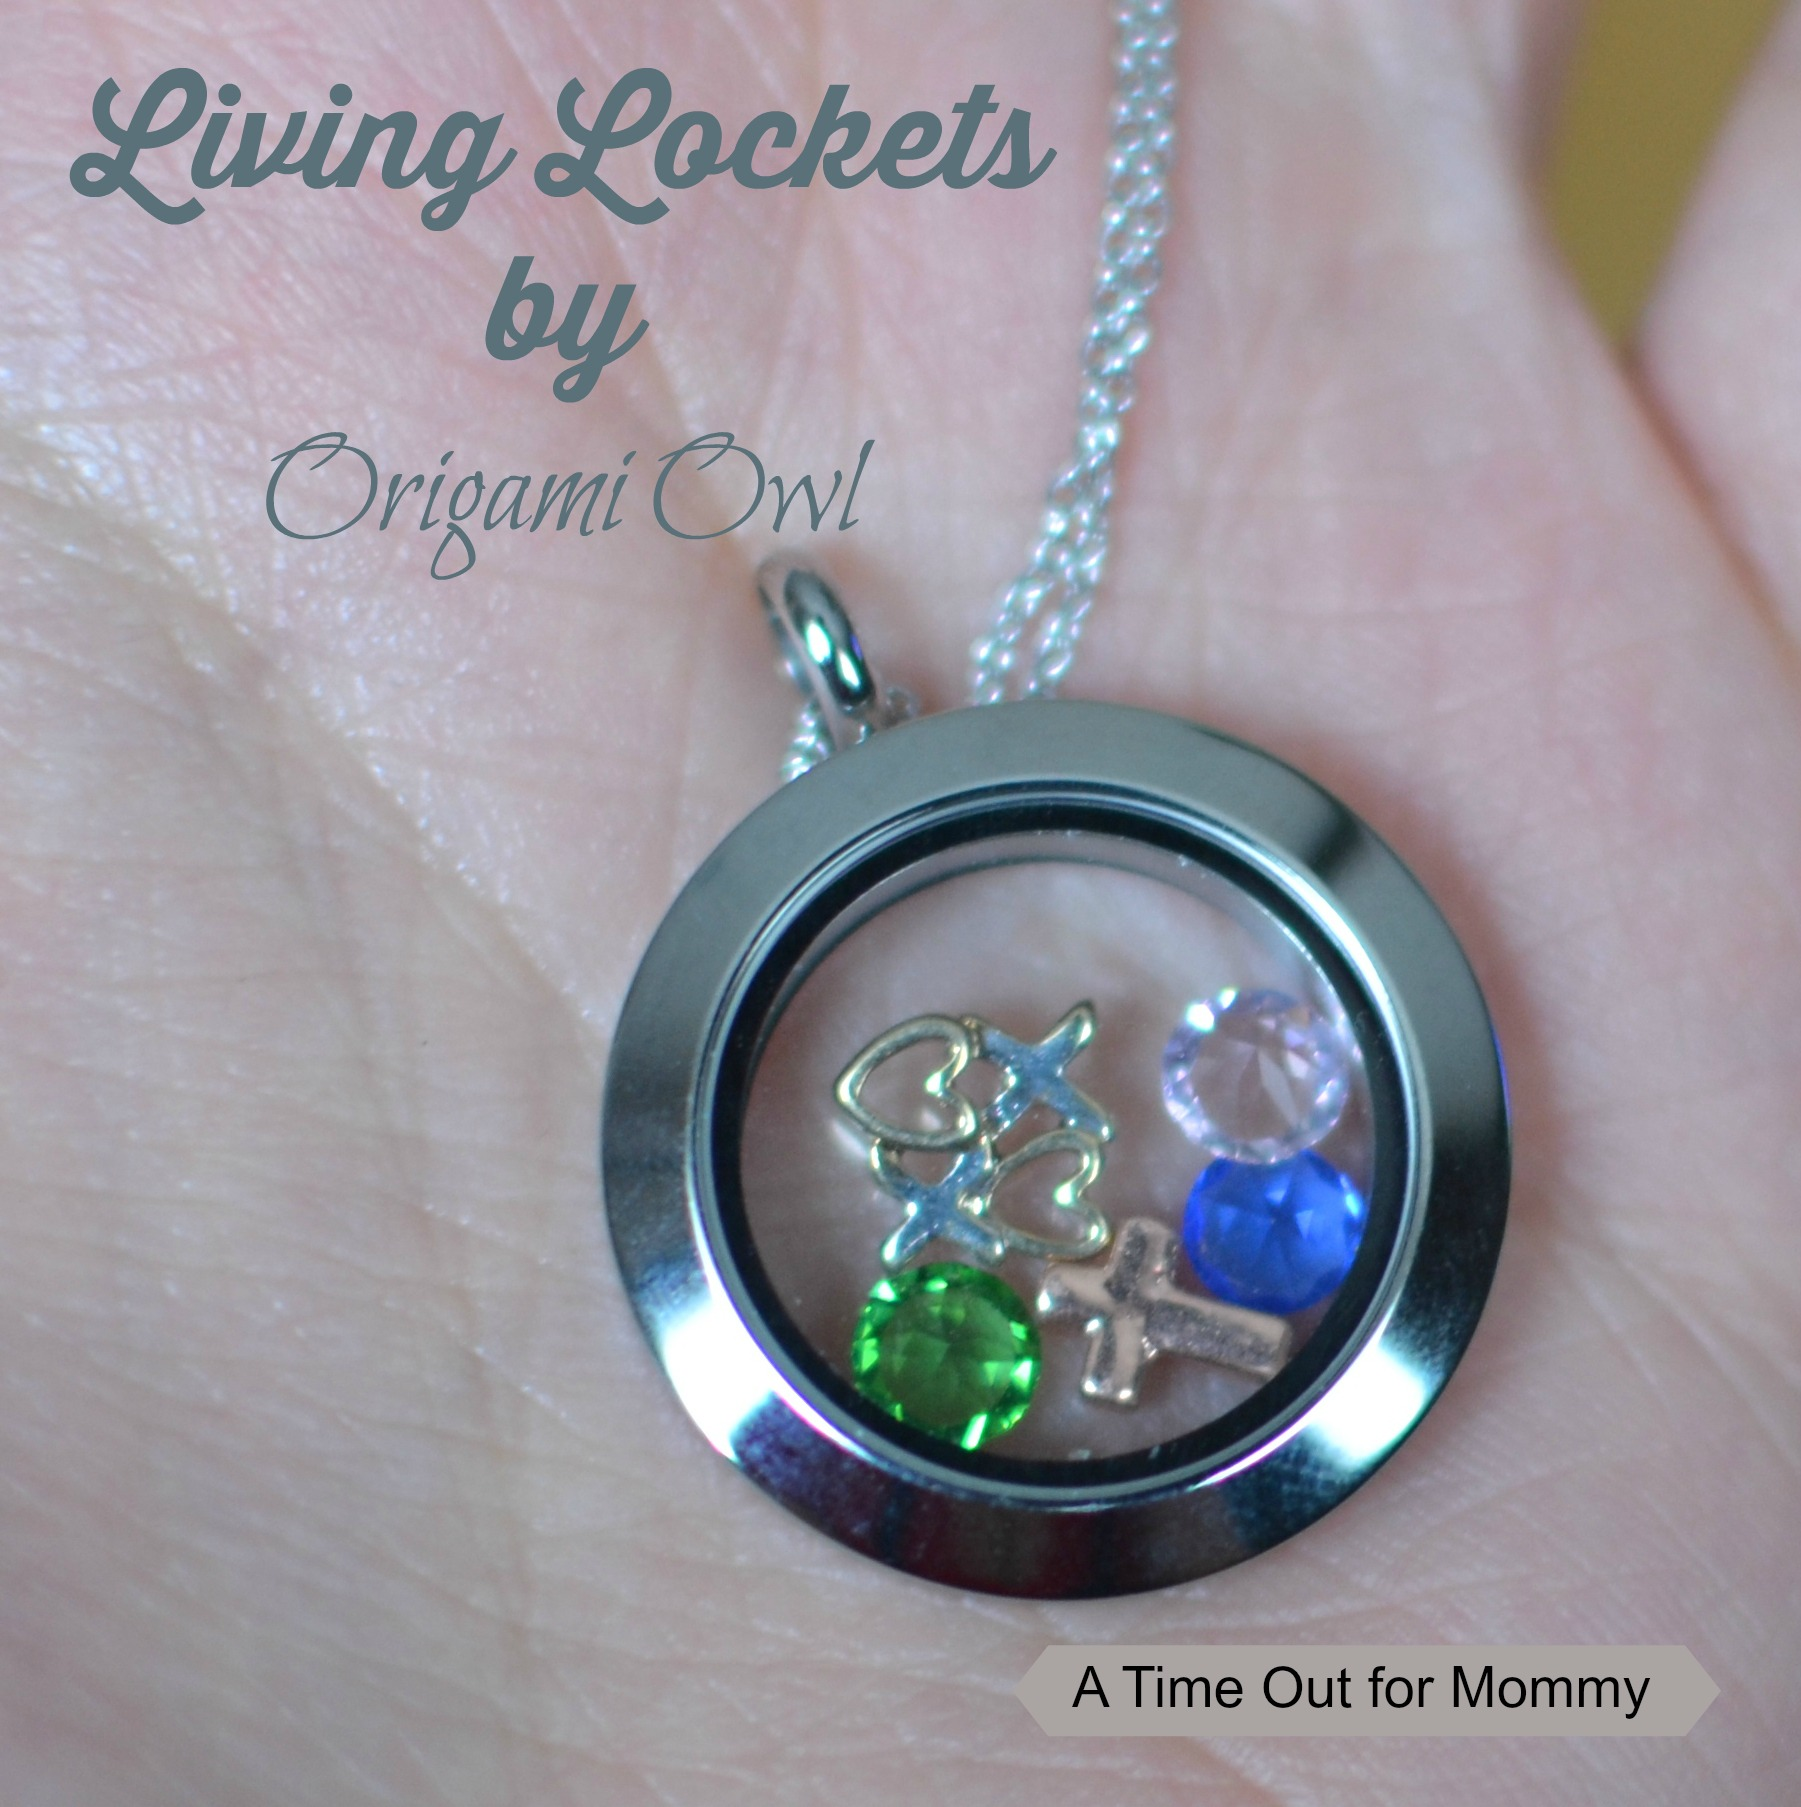 living lockets origami owl - A Time Out for Mommy - photo#34